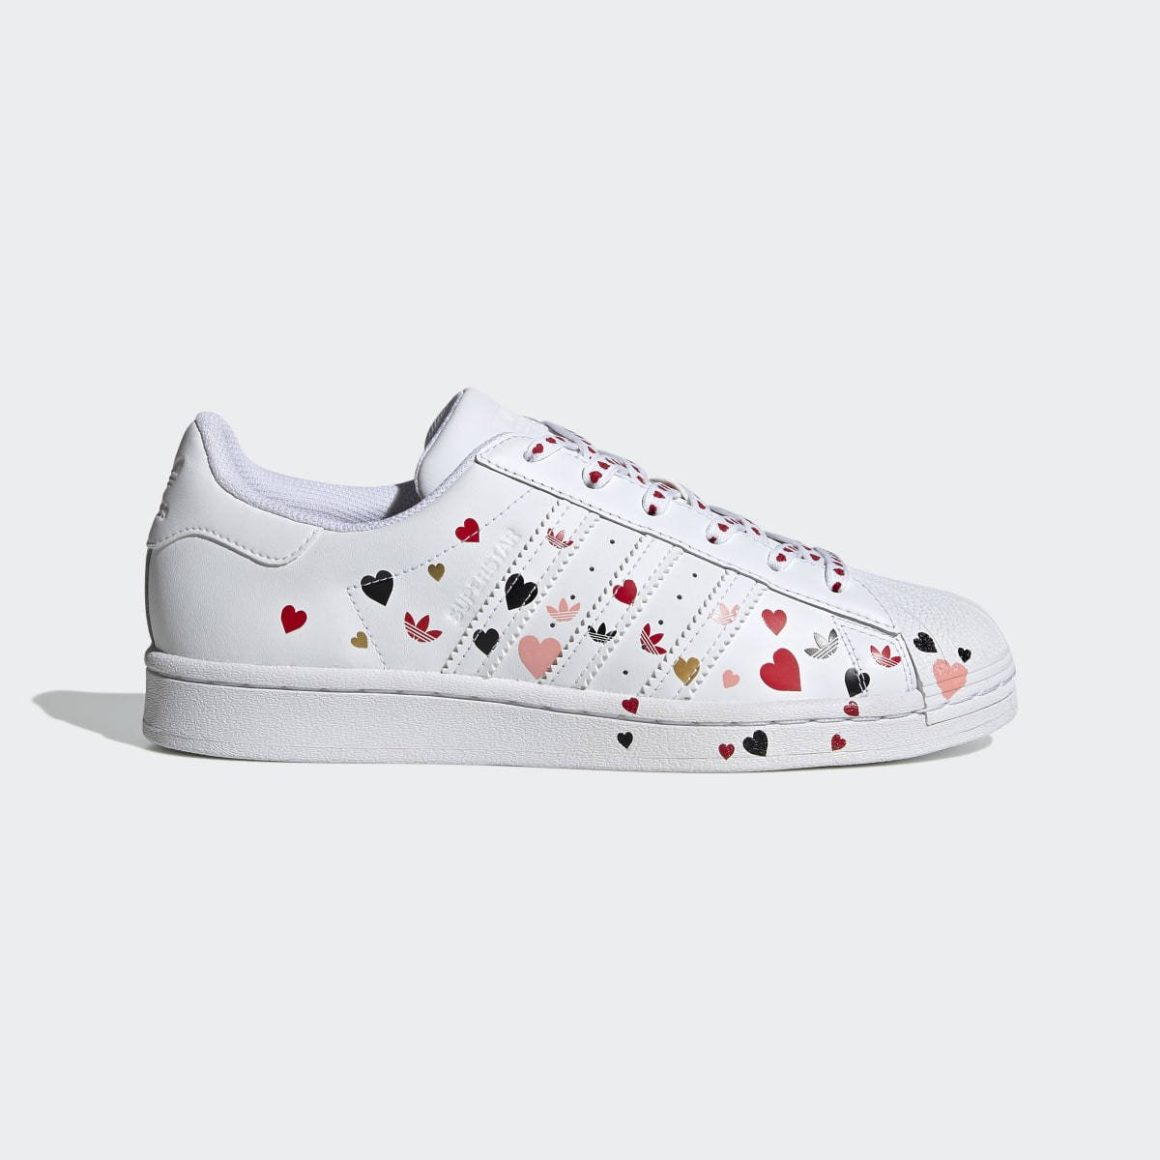 adidas-originals-superstar-fv3289